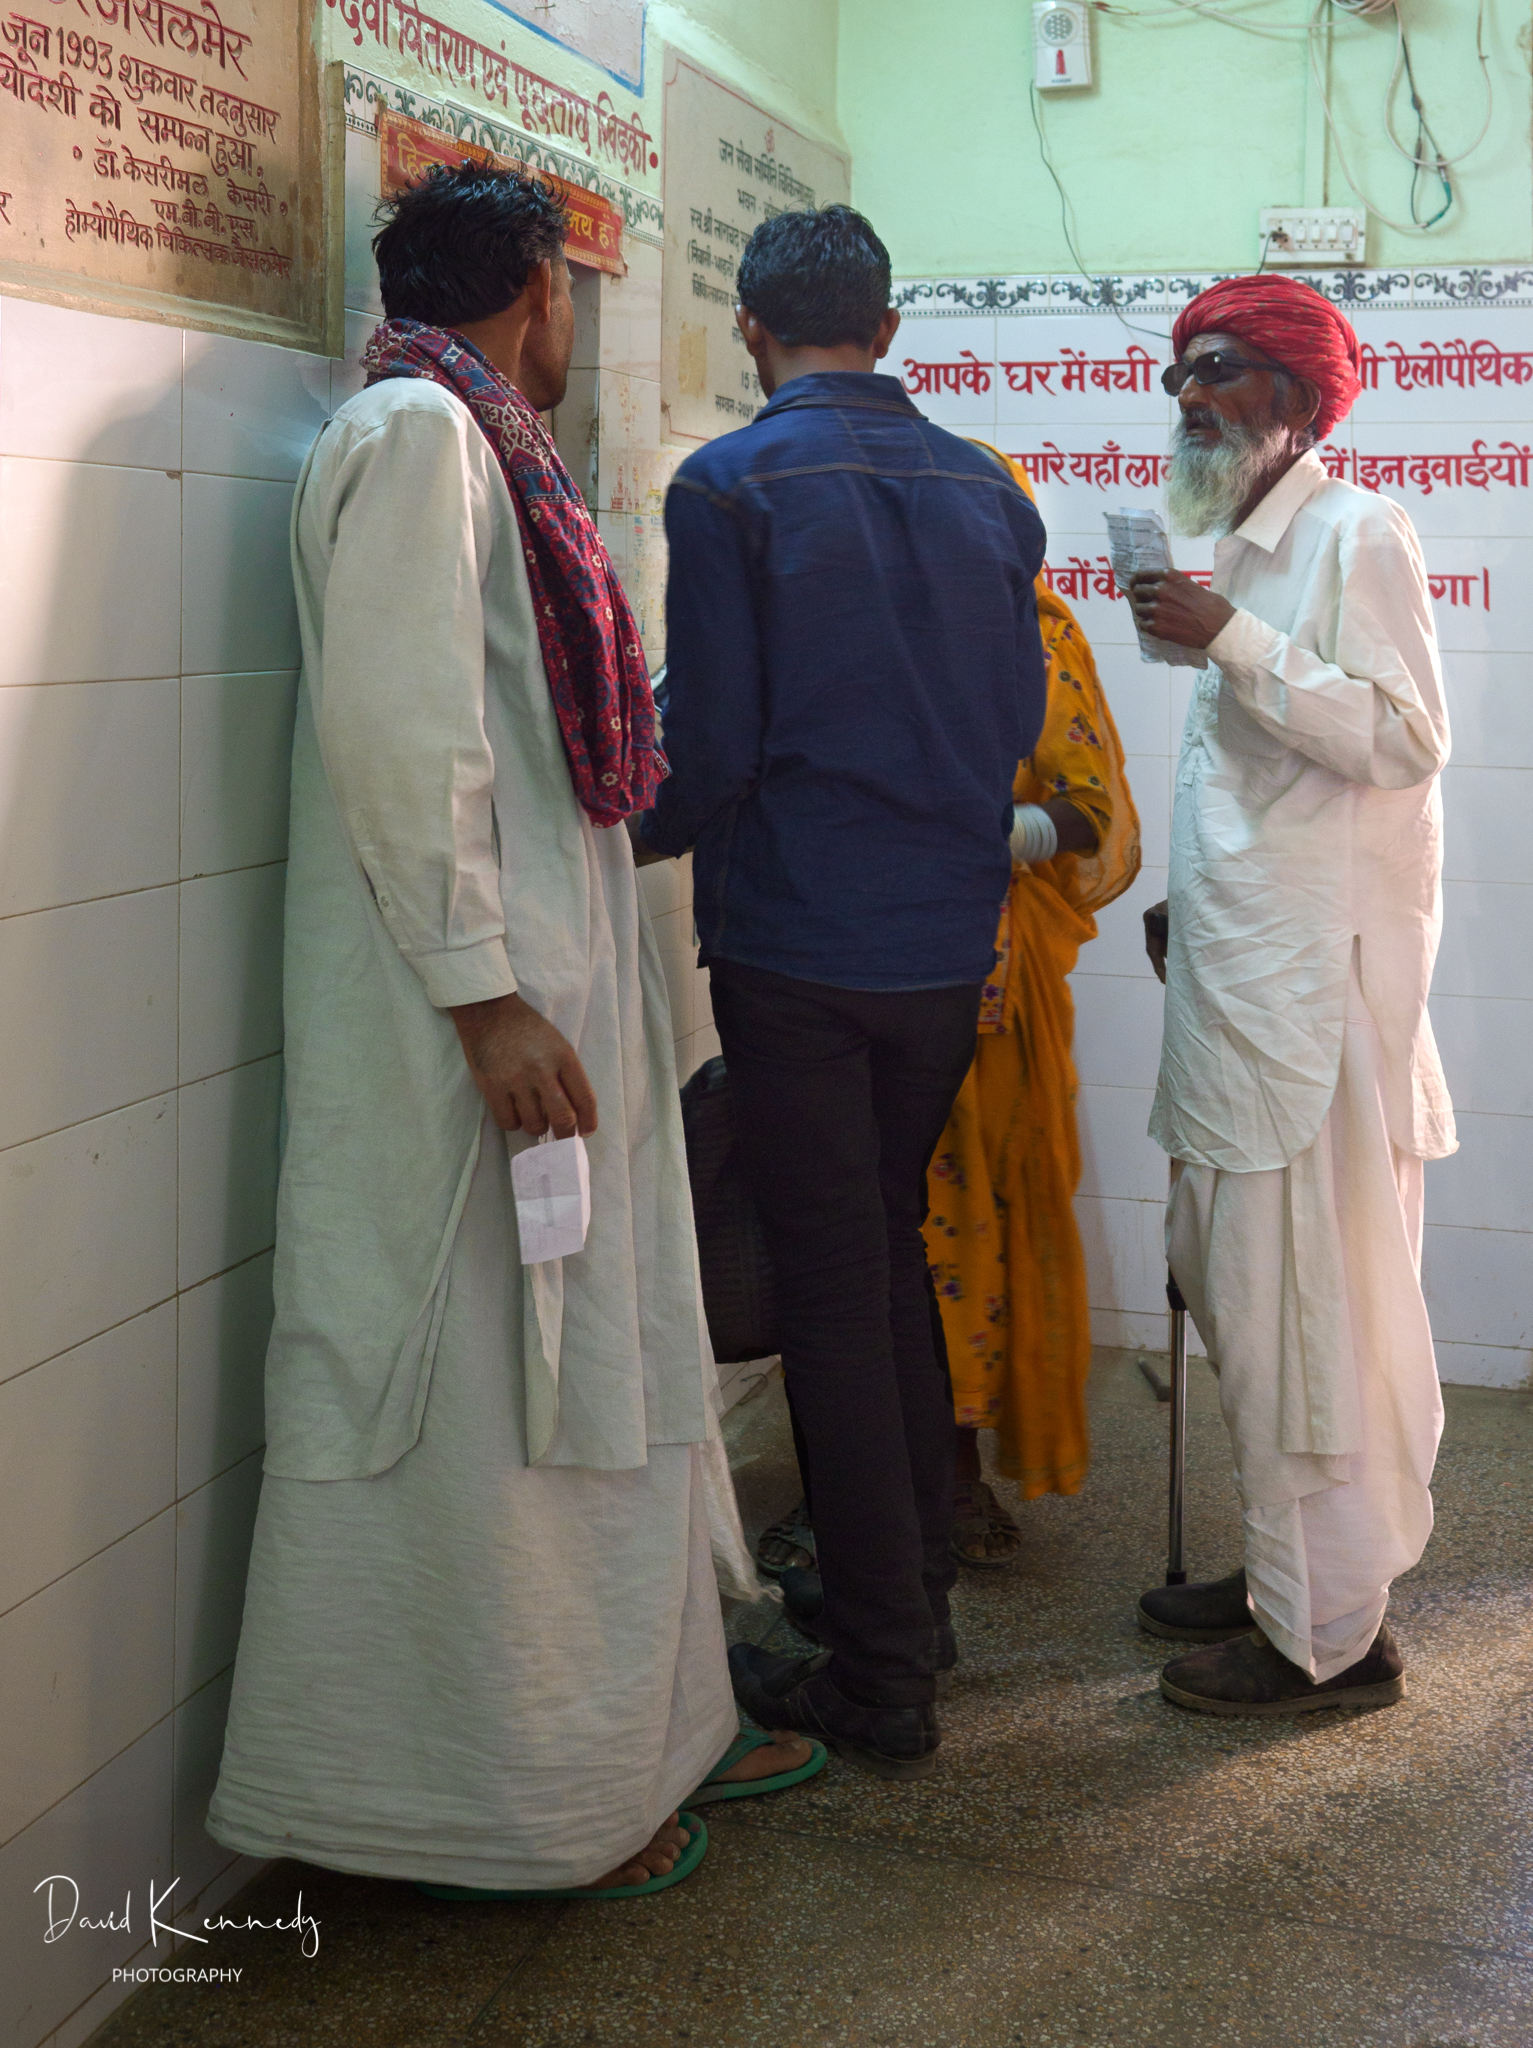 People gathered at the clinic reception